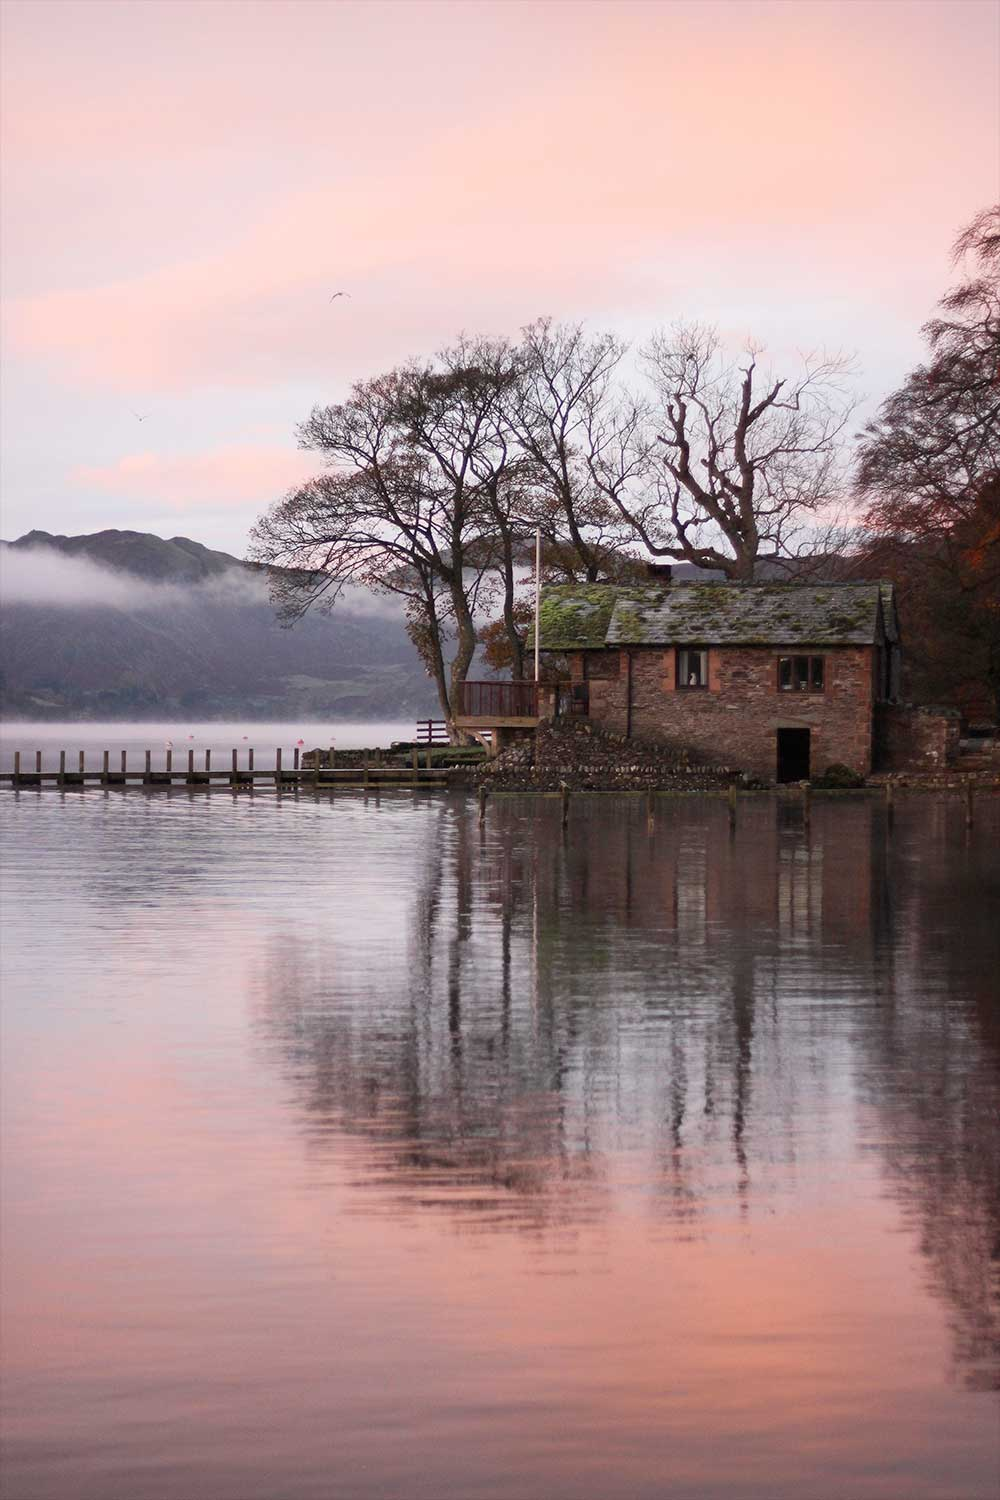 The boat house at sunrise